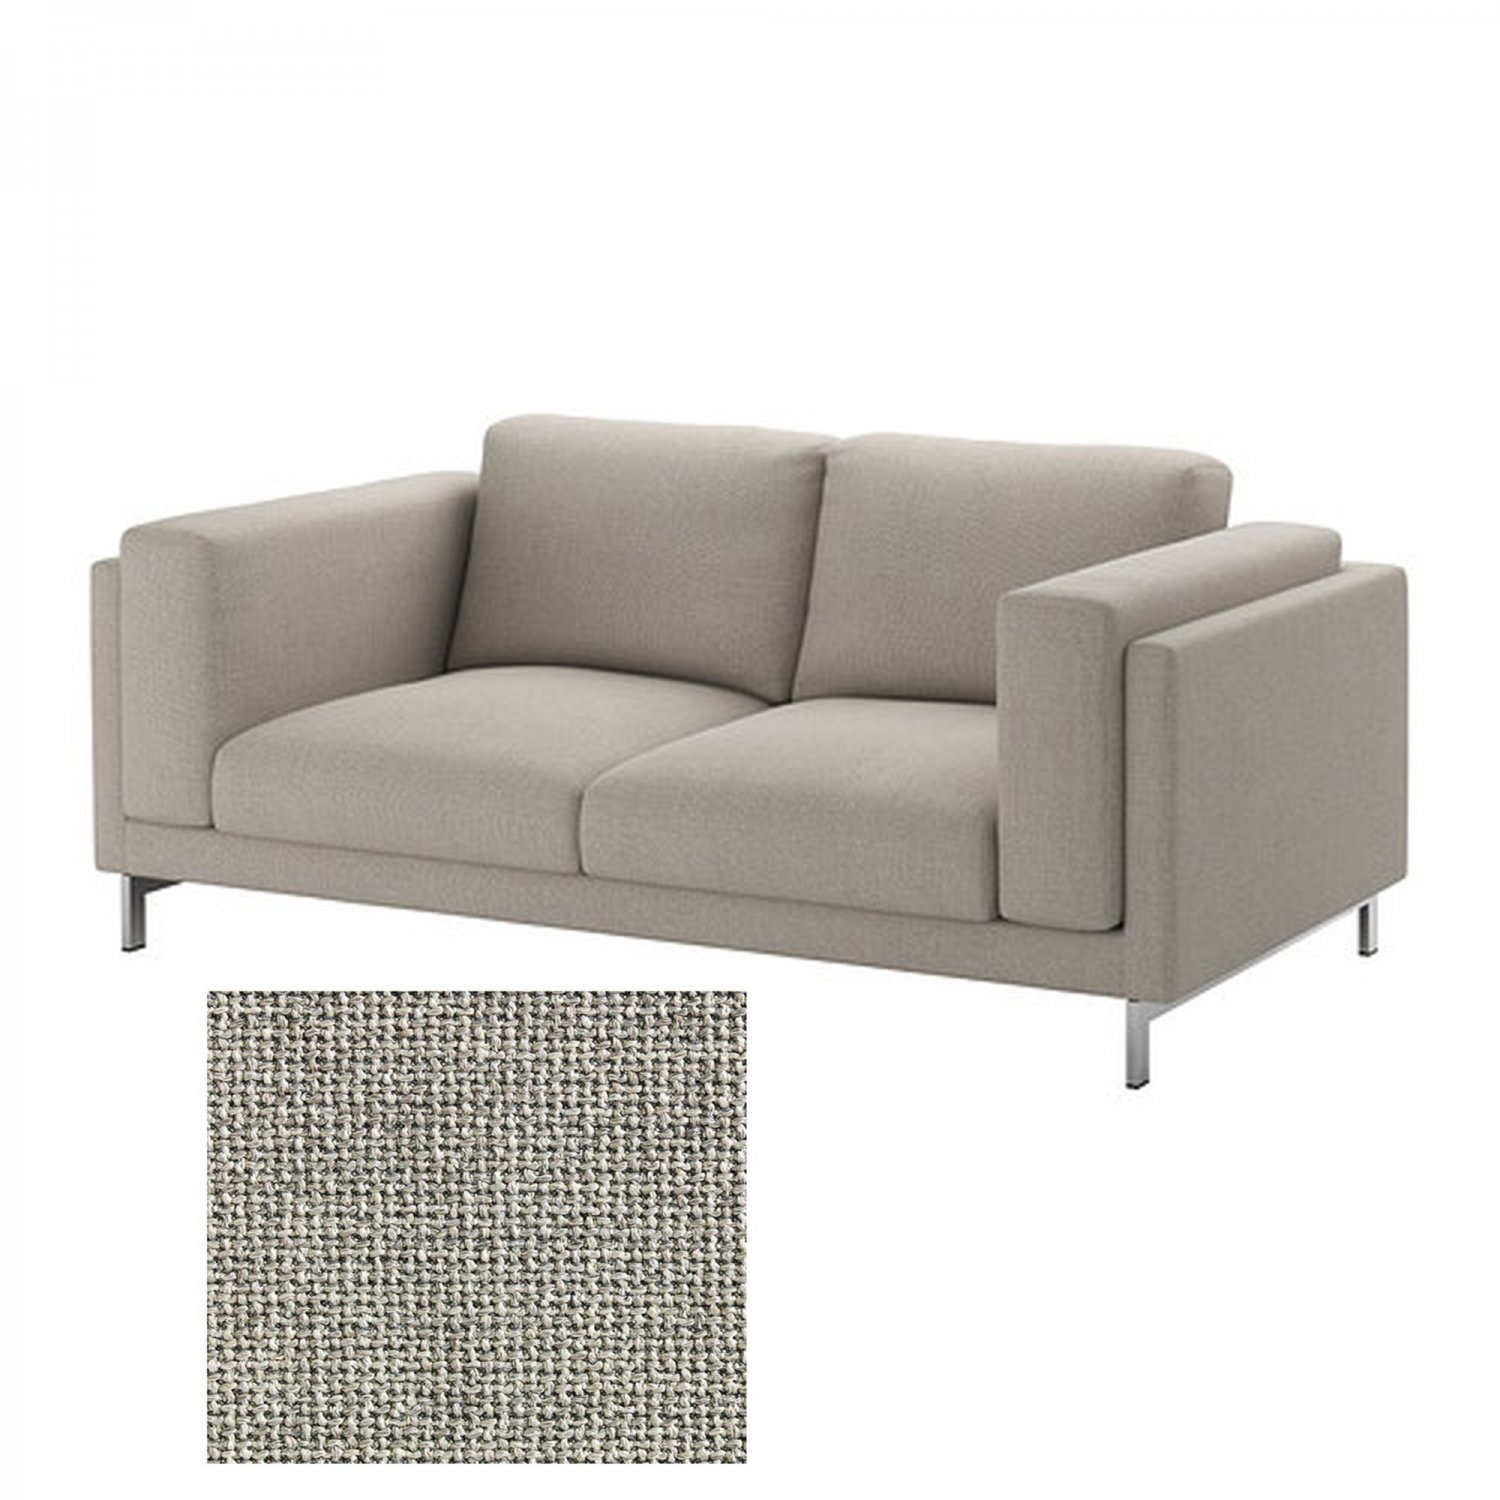 2 Seater Ikea Sofa Cover Ikea Nockeby Slipcover 2 Seat Loveseat Cover Teno Light Gray Tenà Grey